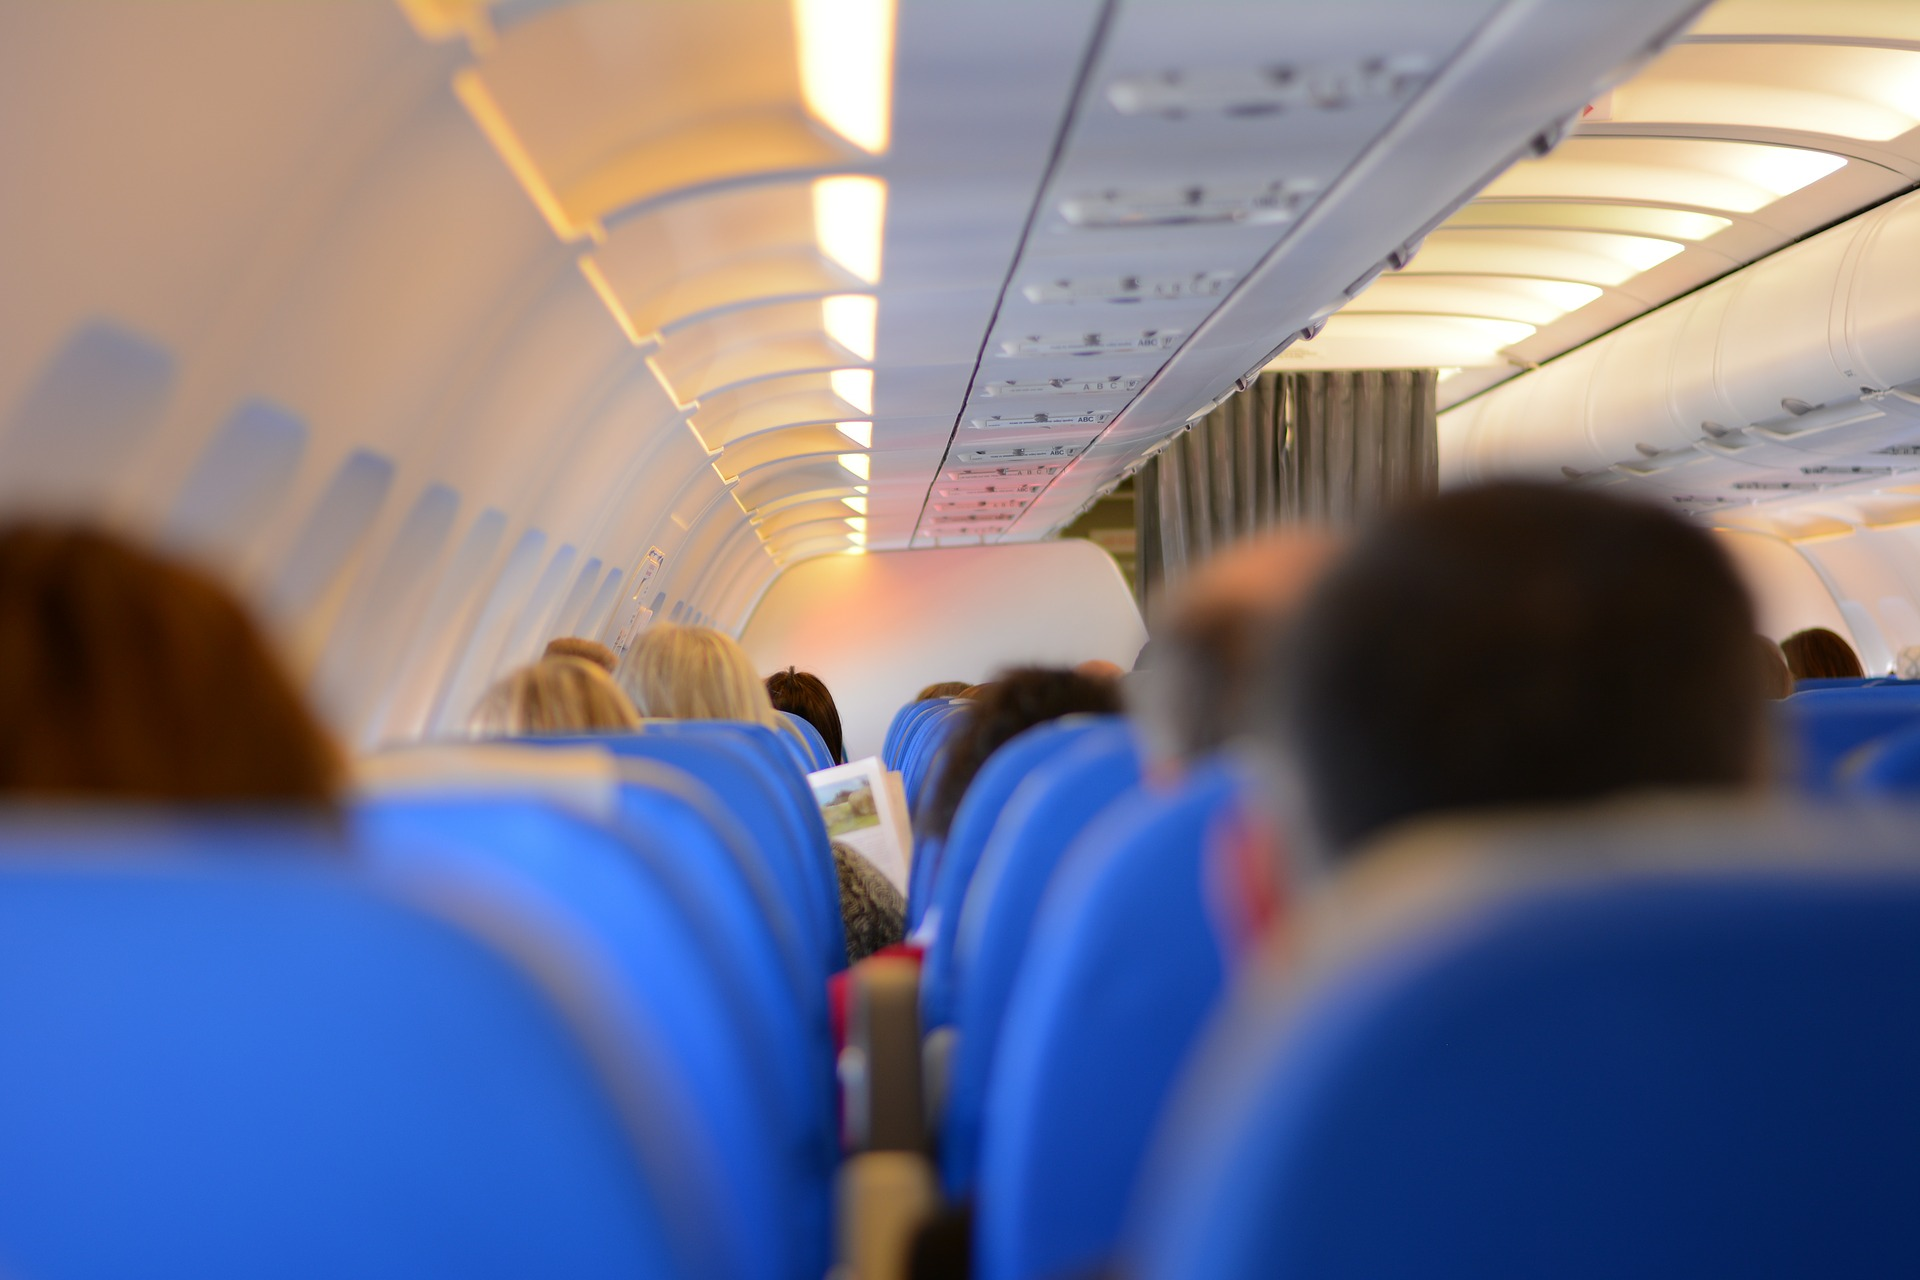 Overweight People Should Pay More For Plane Tickets According To Poll passengers 519008 1920